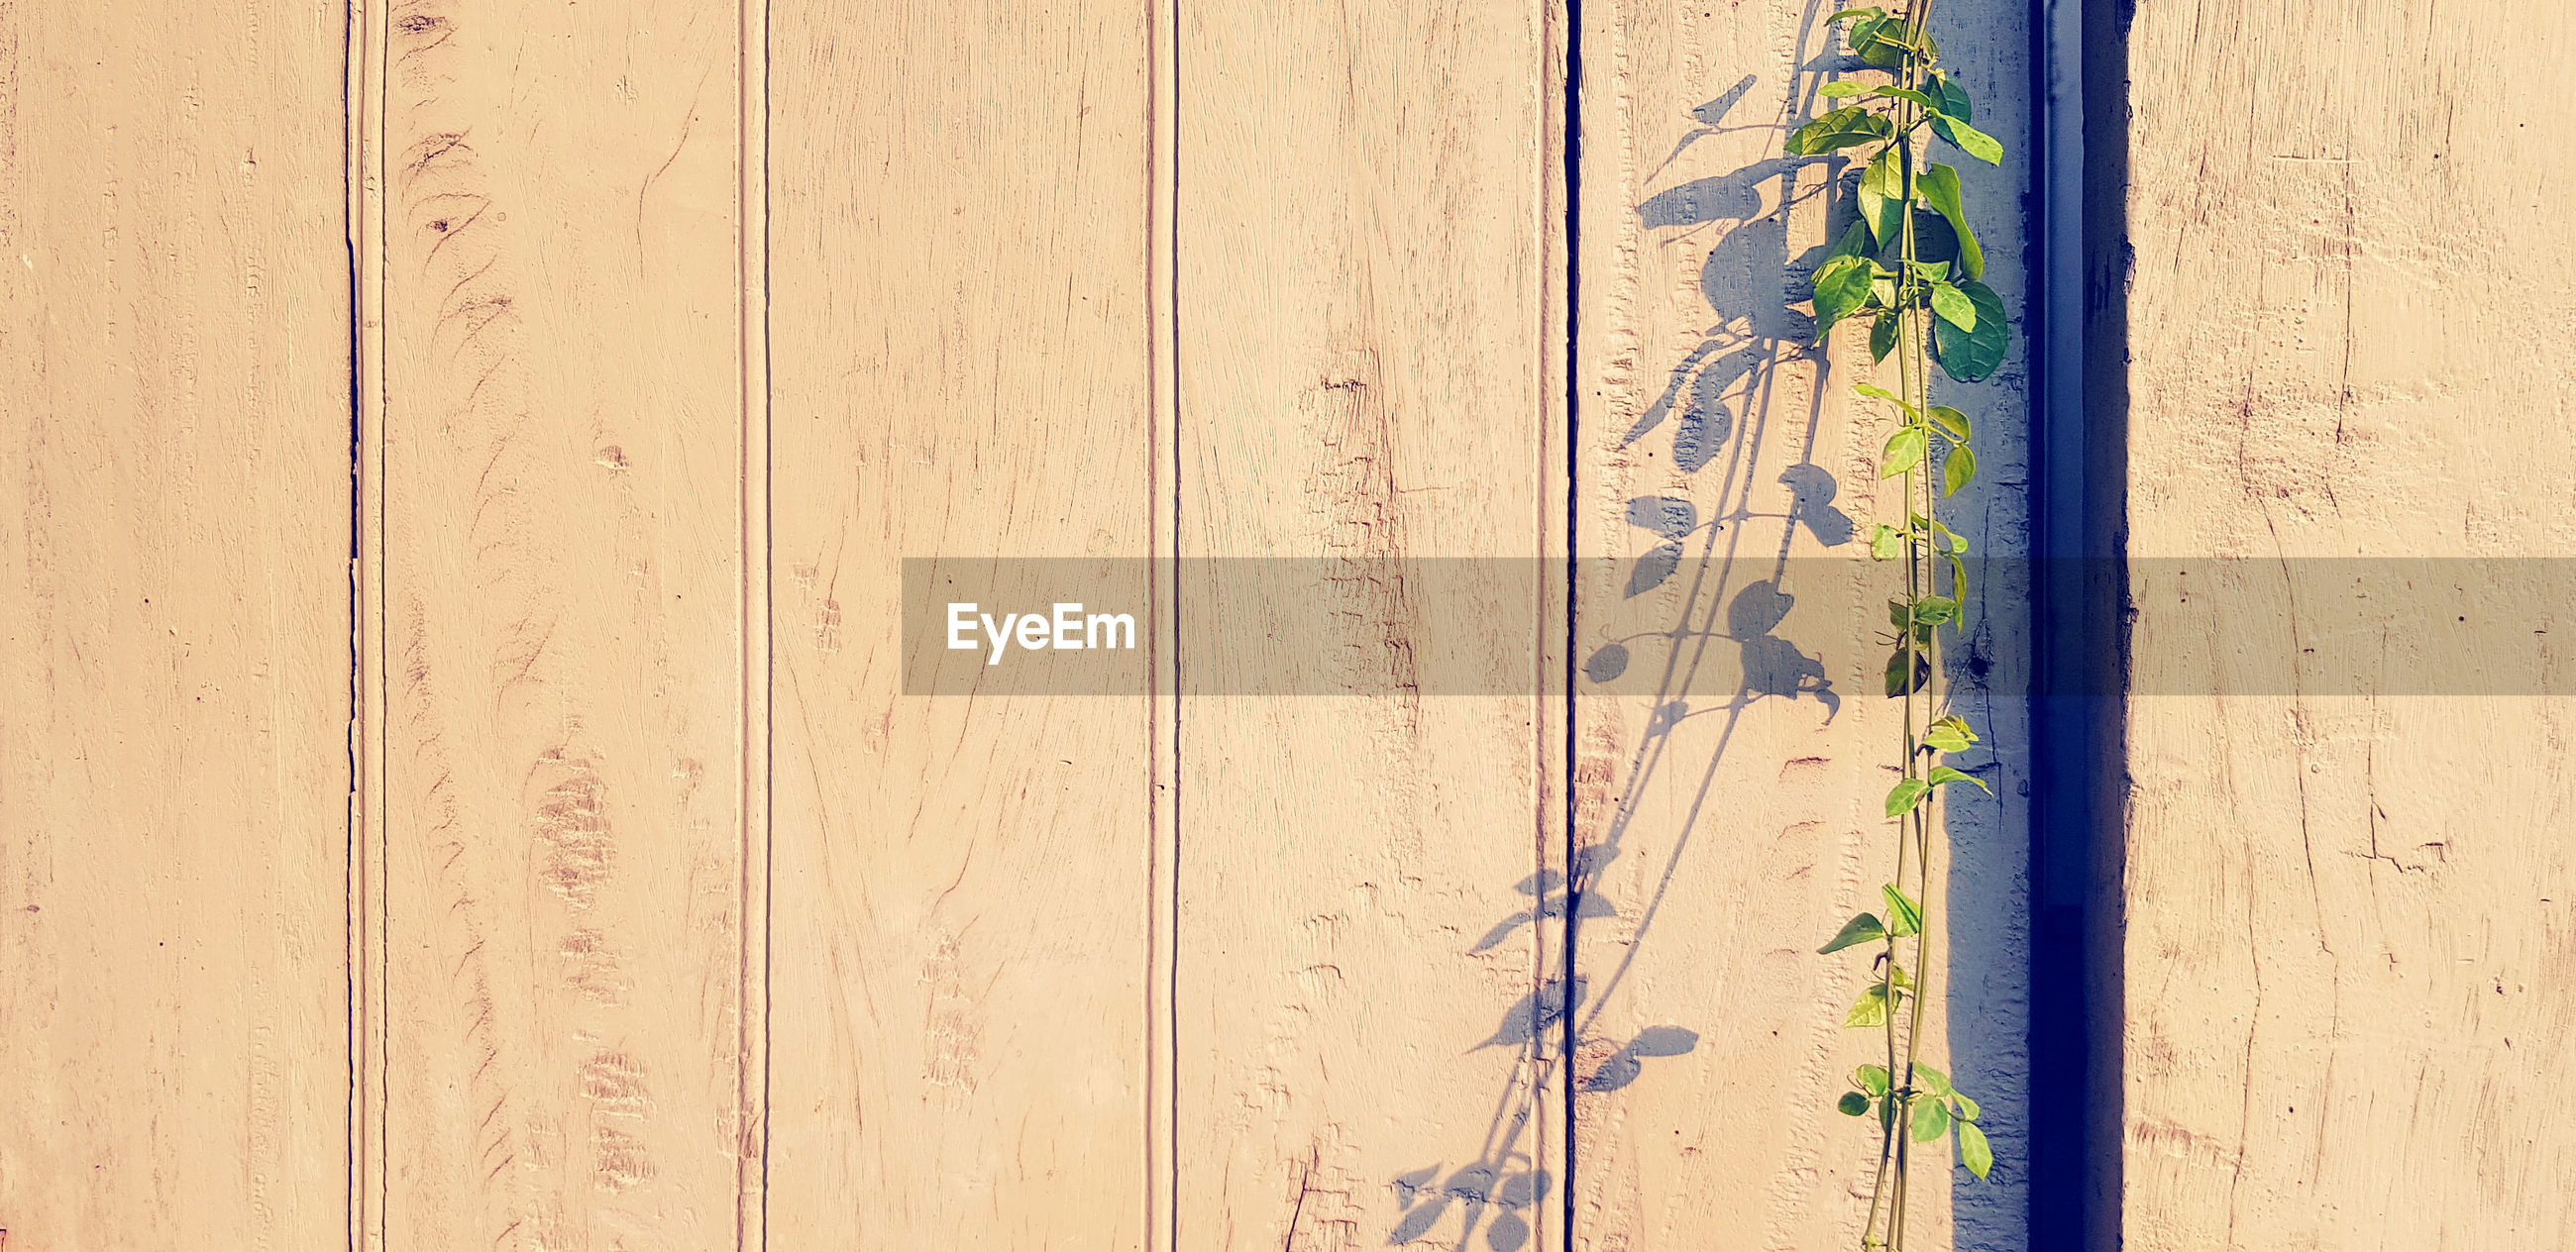 FULL FRAME SHOT OF WALL WITH WOODEN FENCE